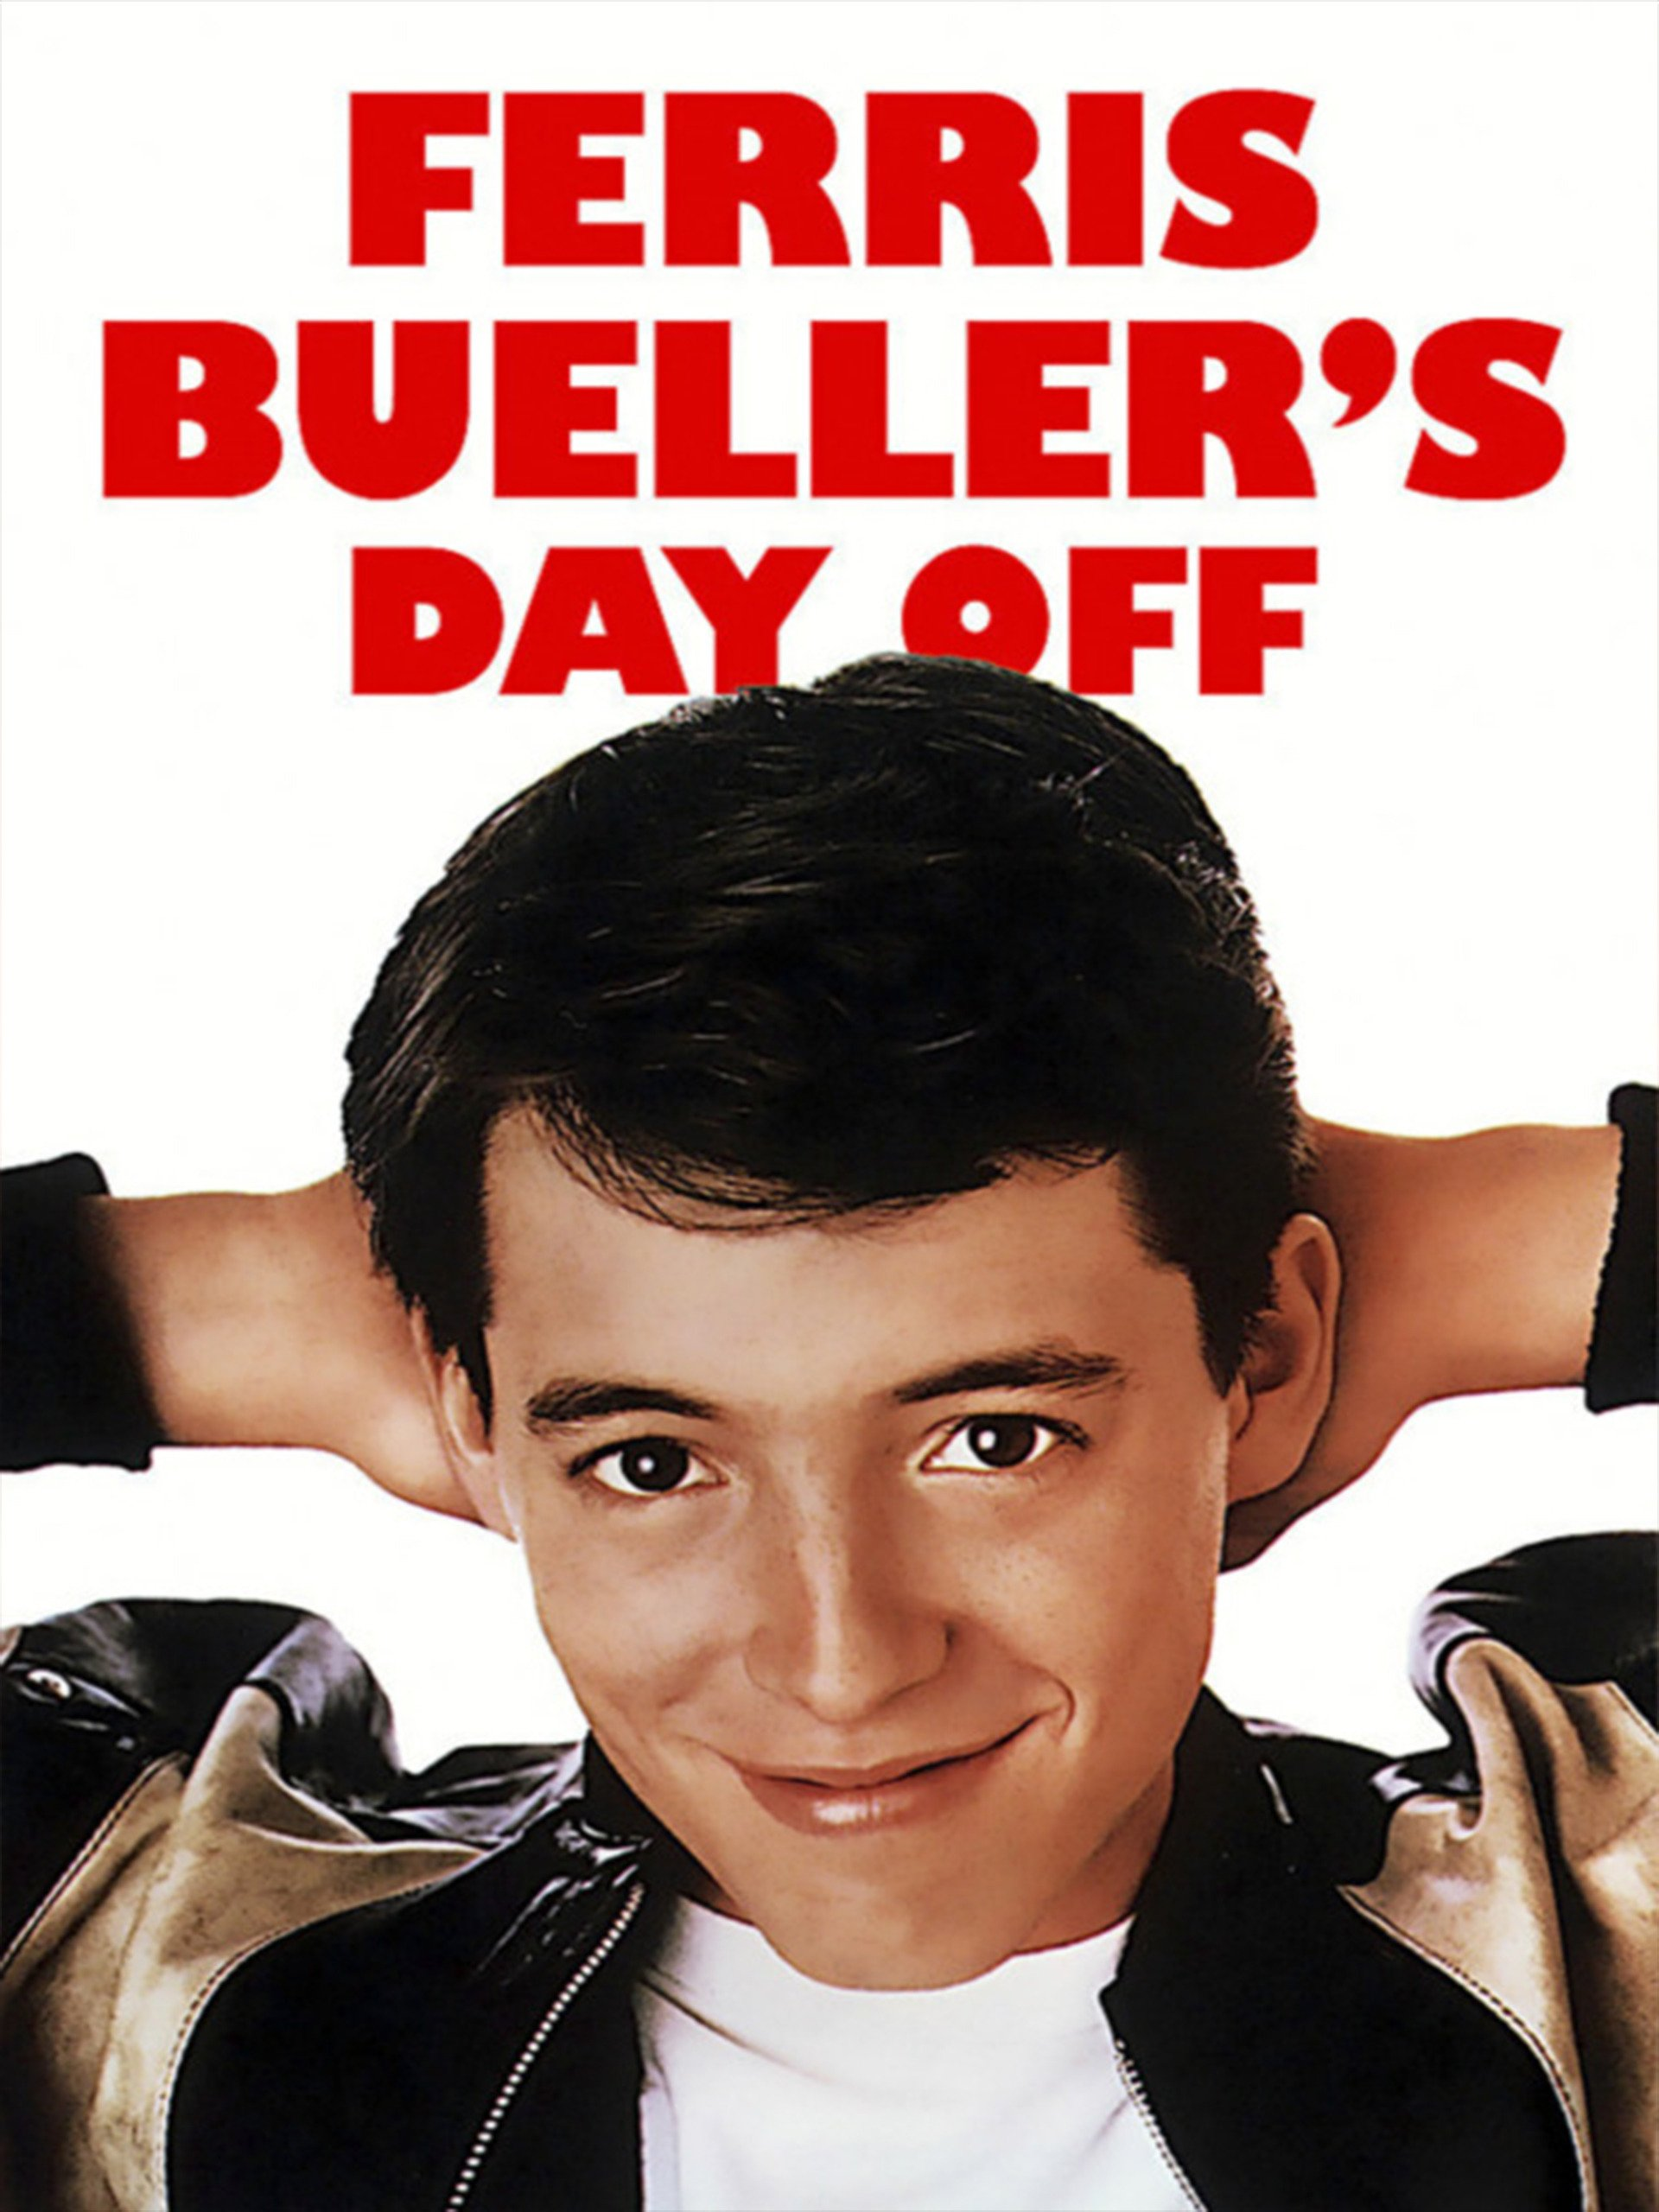 FERRIS BEULLER'S DAY OFF (15) 1986